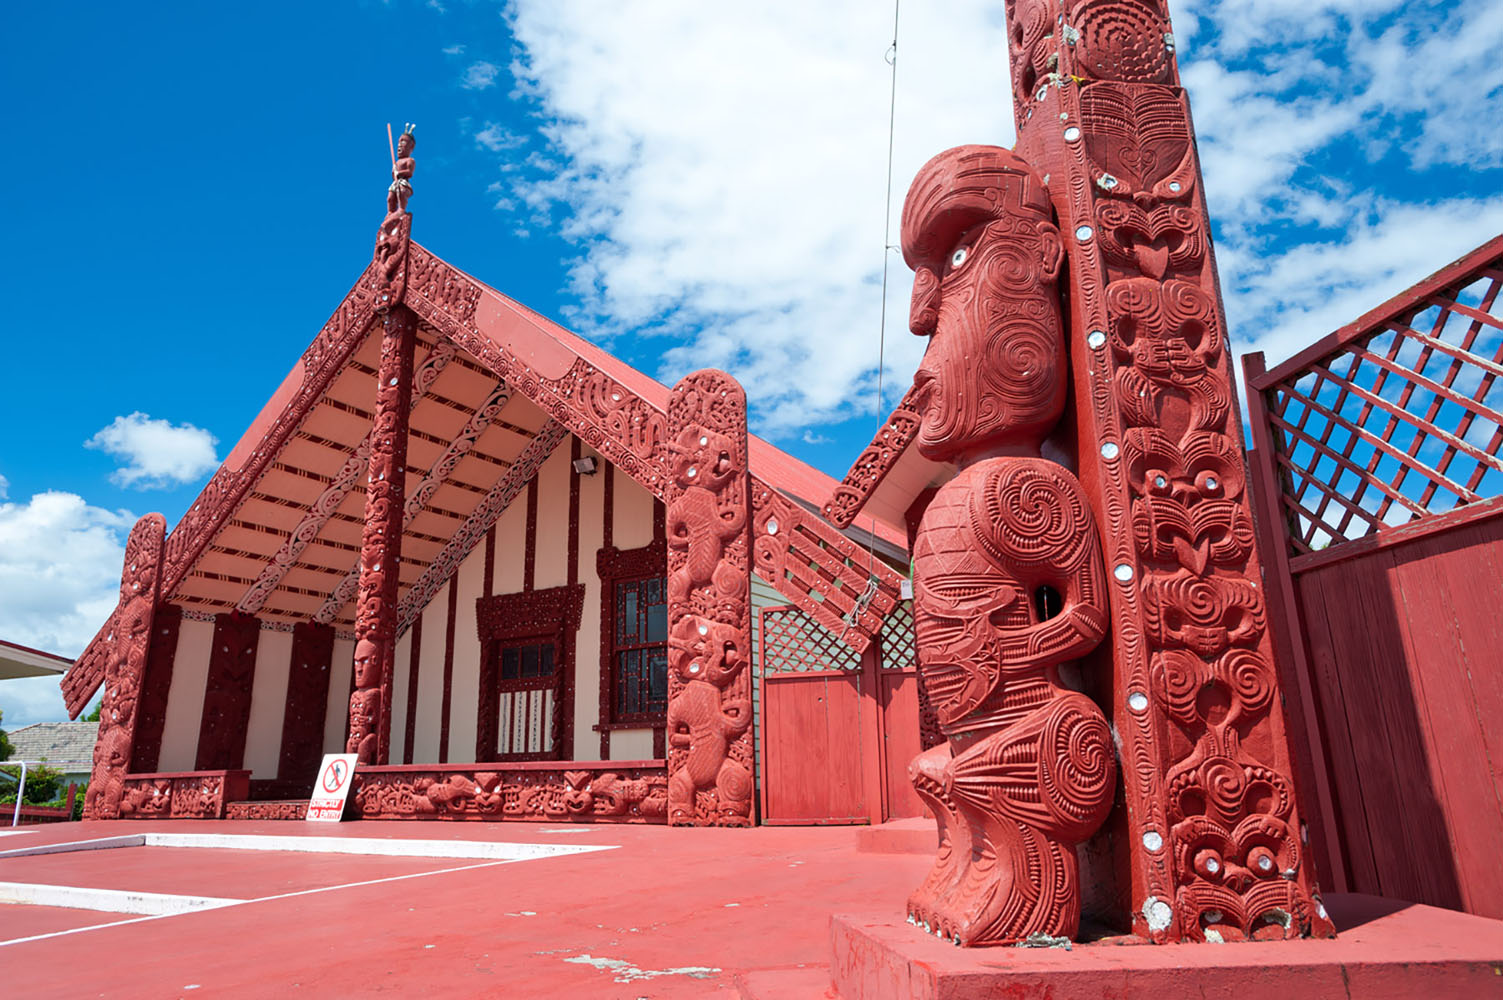 Learn about Maori culture when you visit Rotorua, New Zealand.